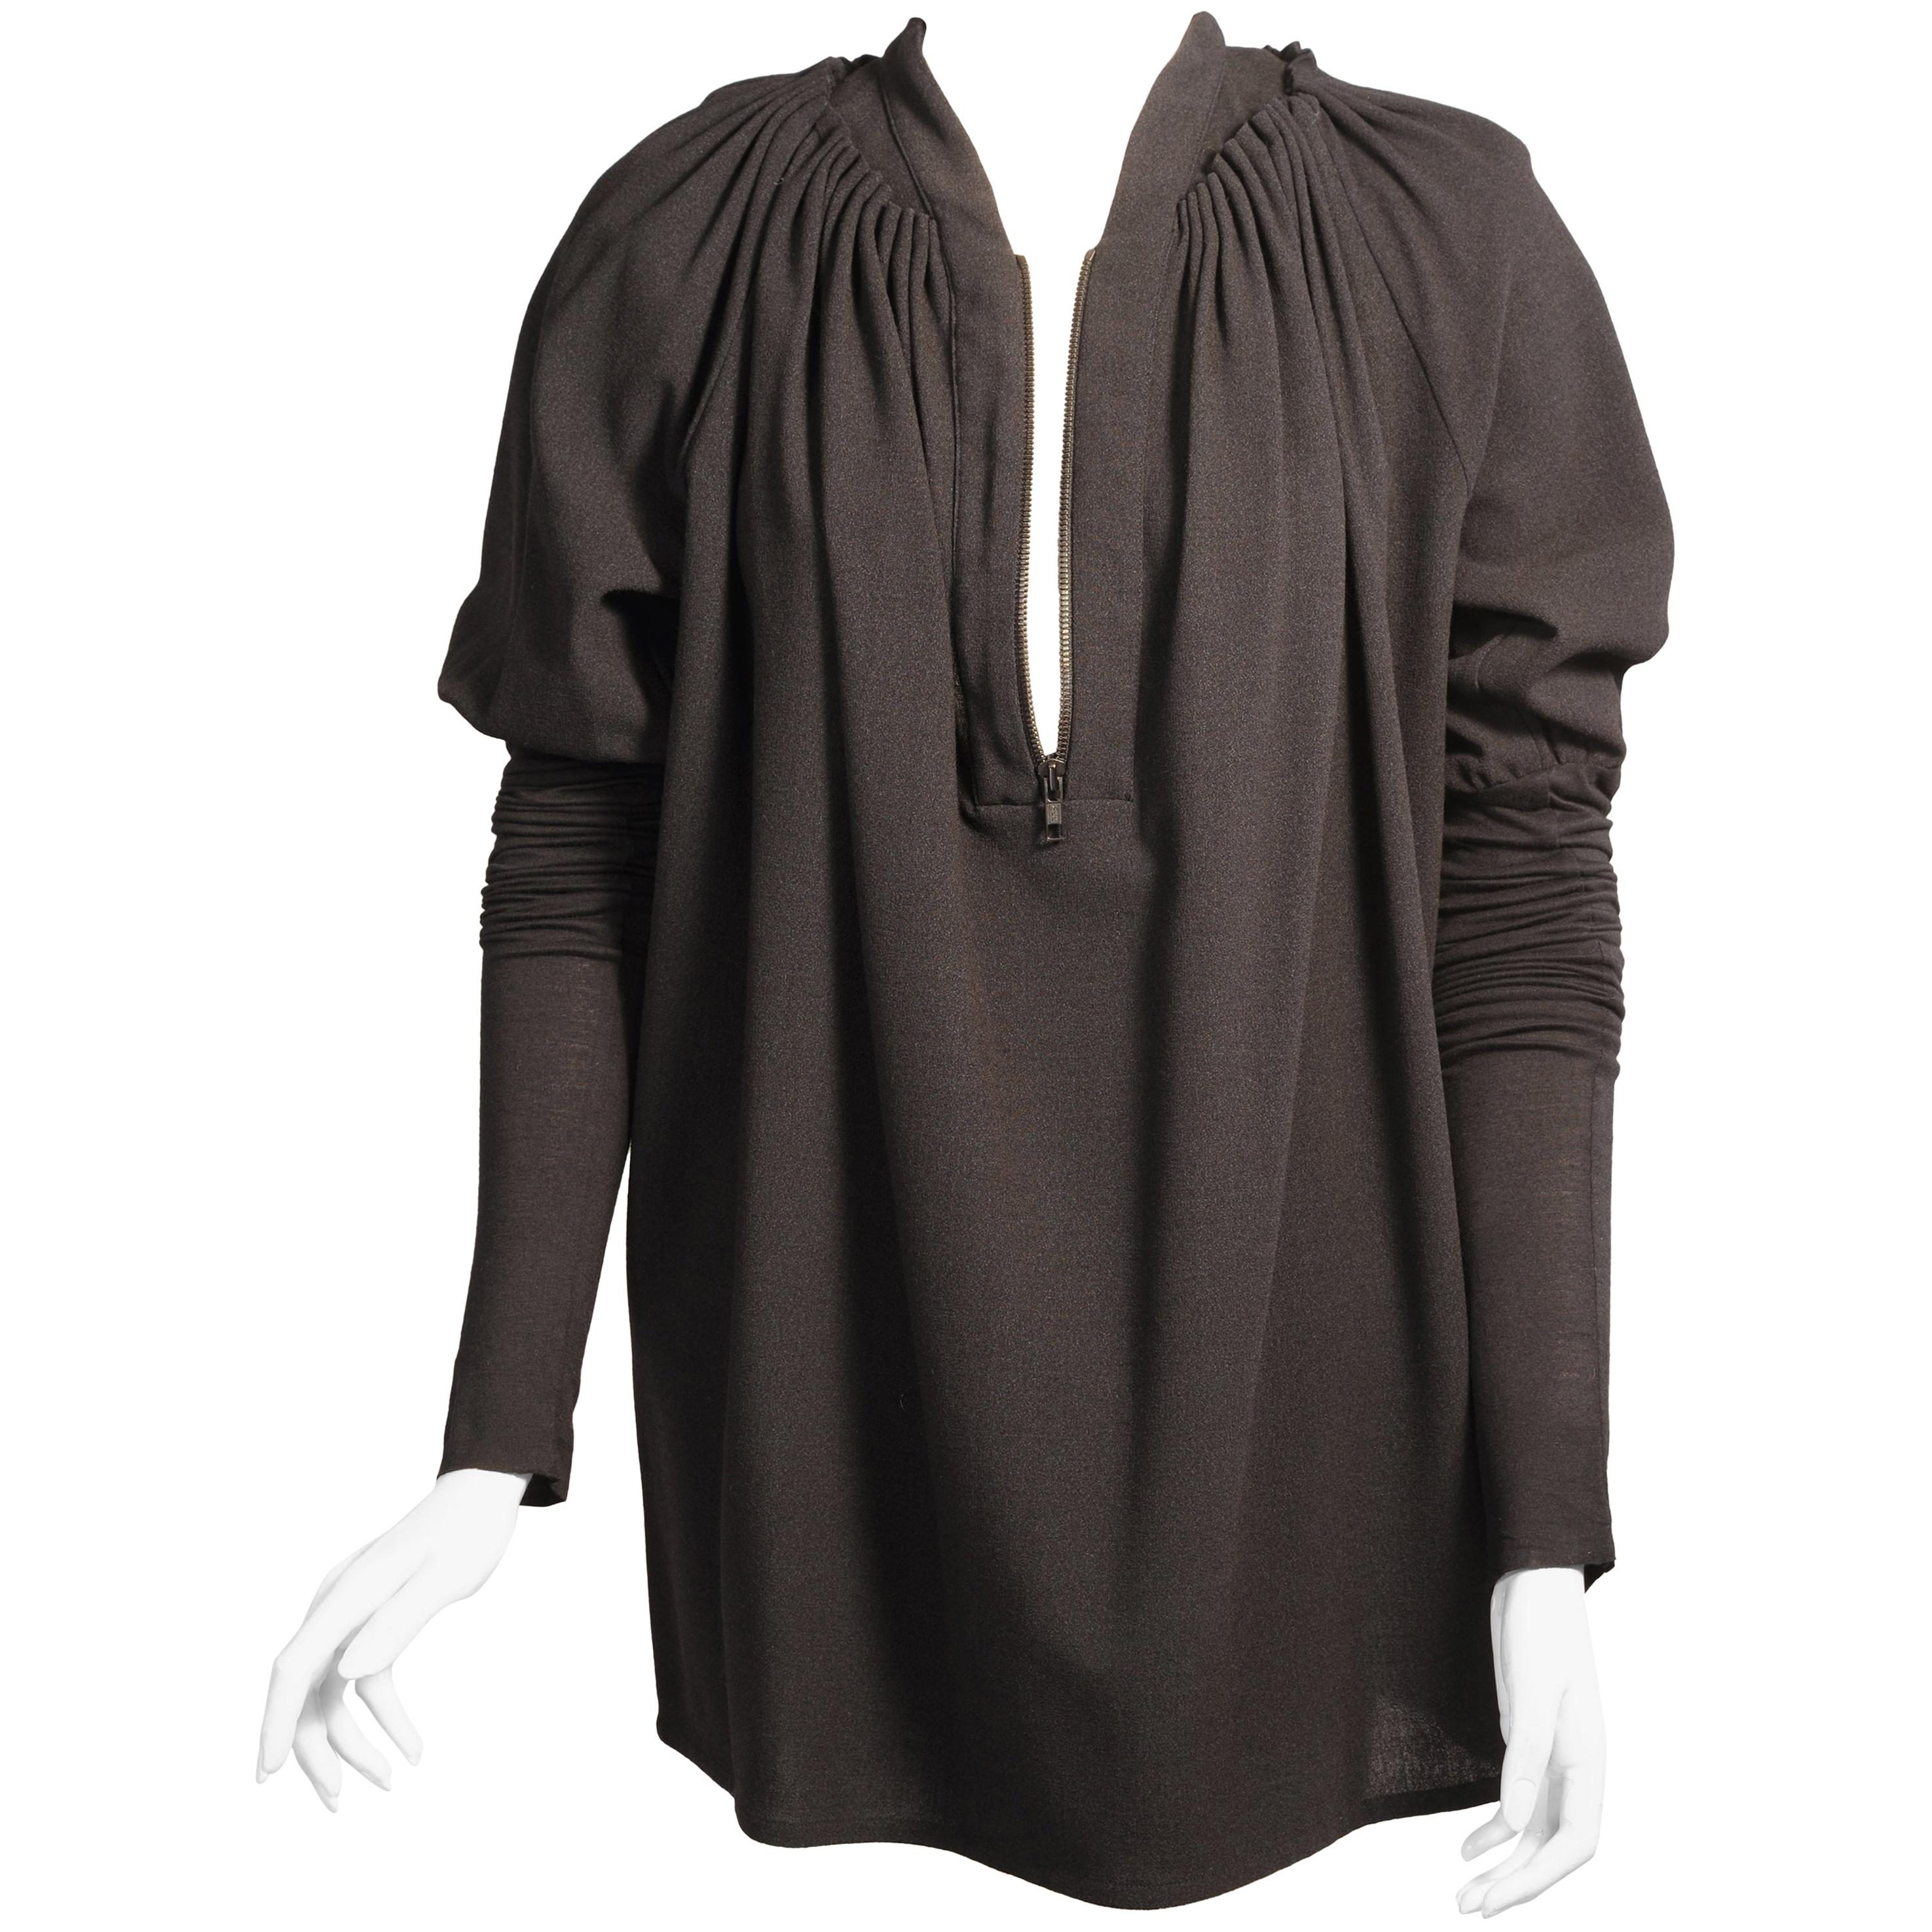 Givenchy Black Wool/Silk Blend Zip Front Tunic with Exceptionally Long Sleeves